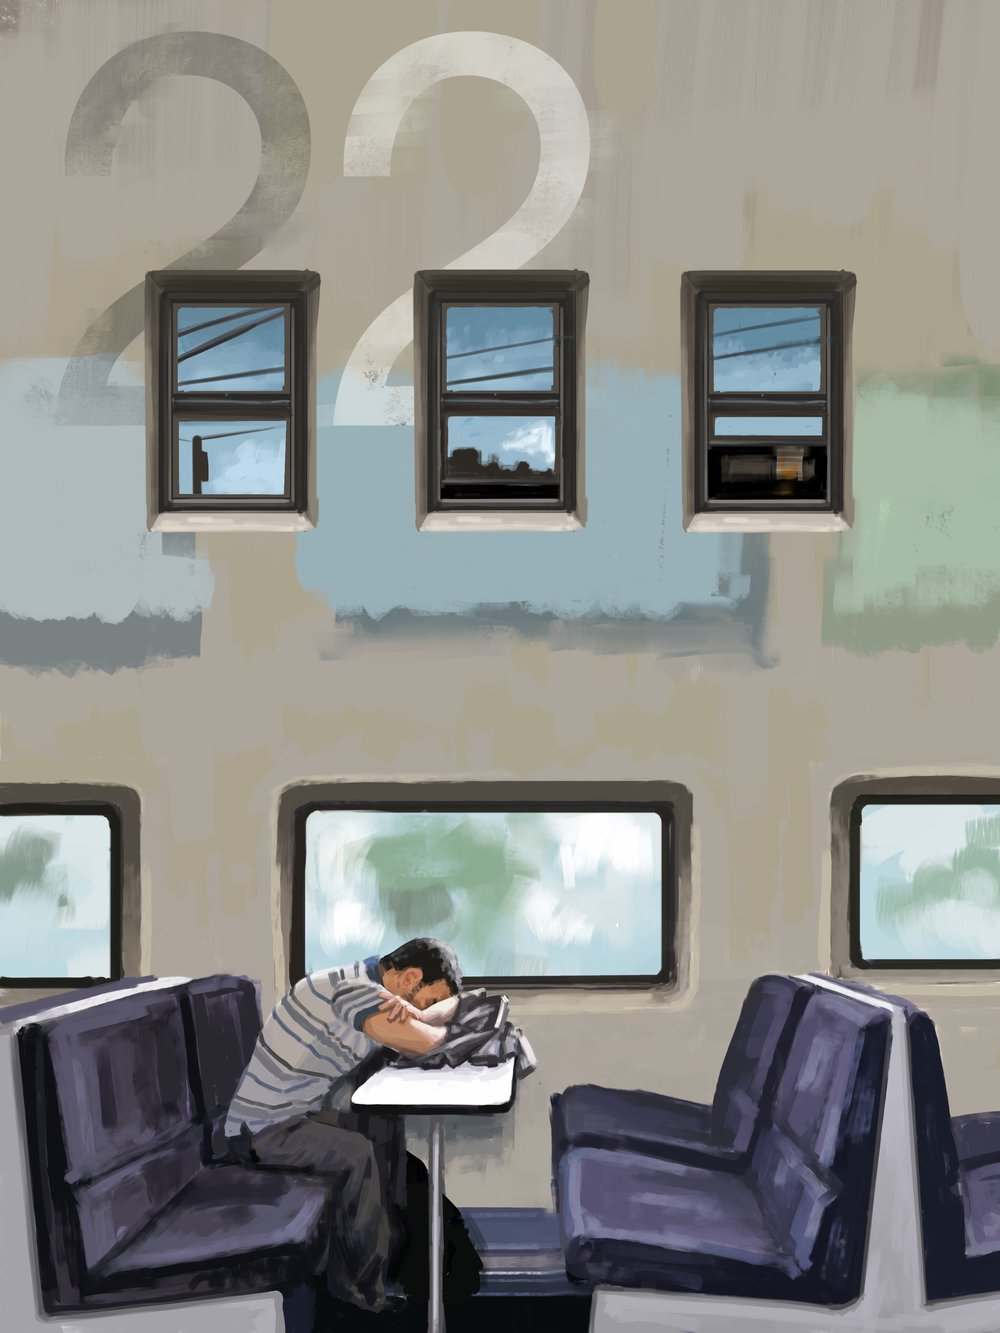 Napping Commuter Digital painting, iPad Pro, Procreate